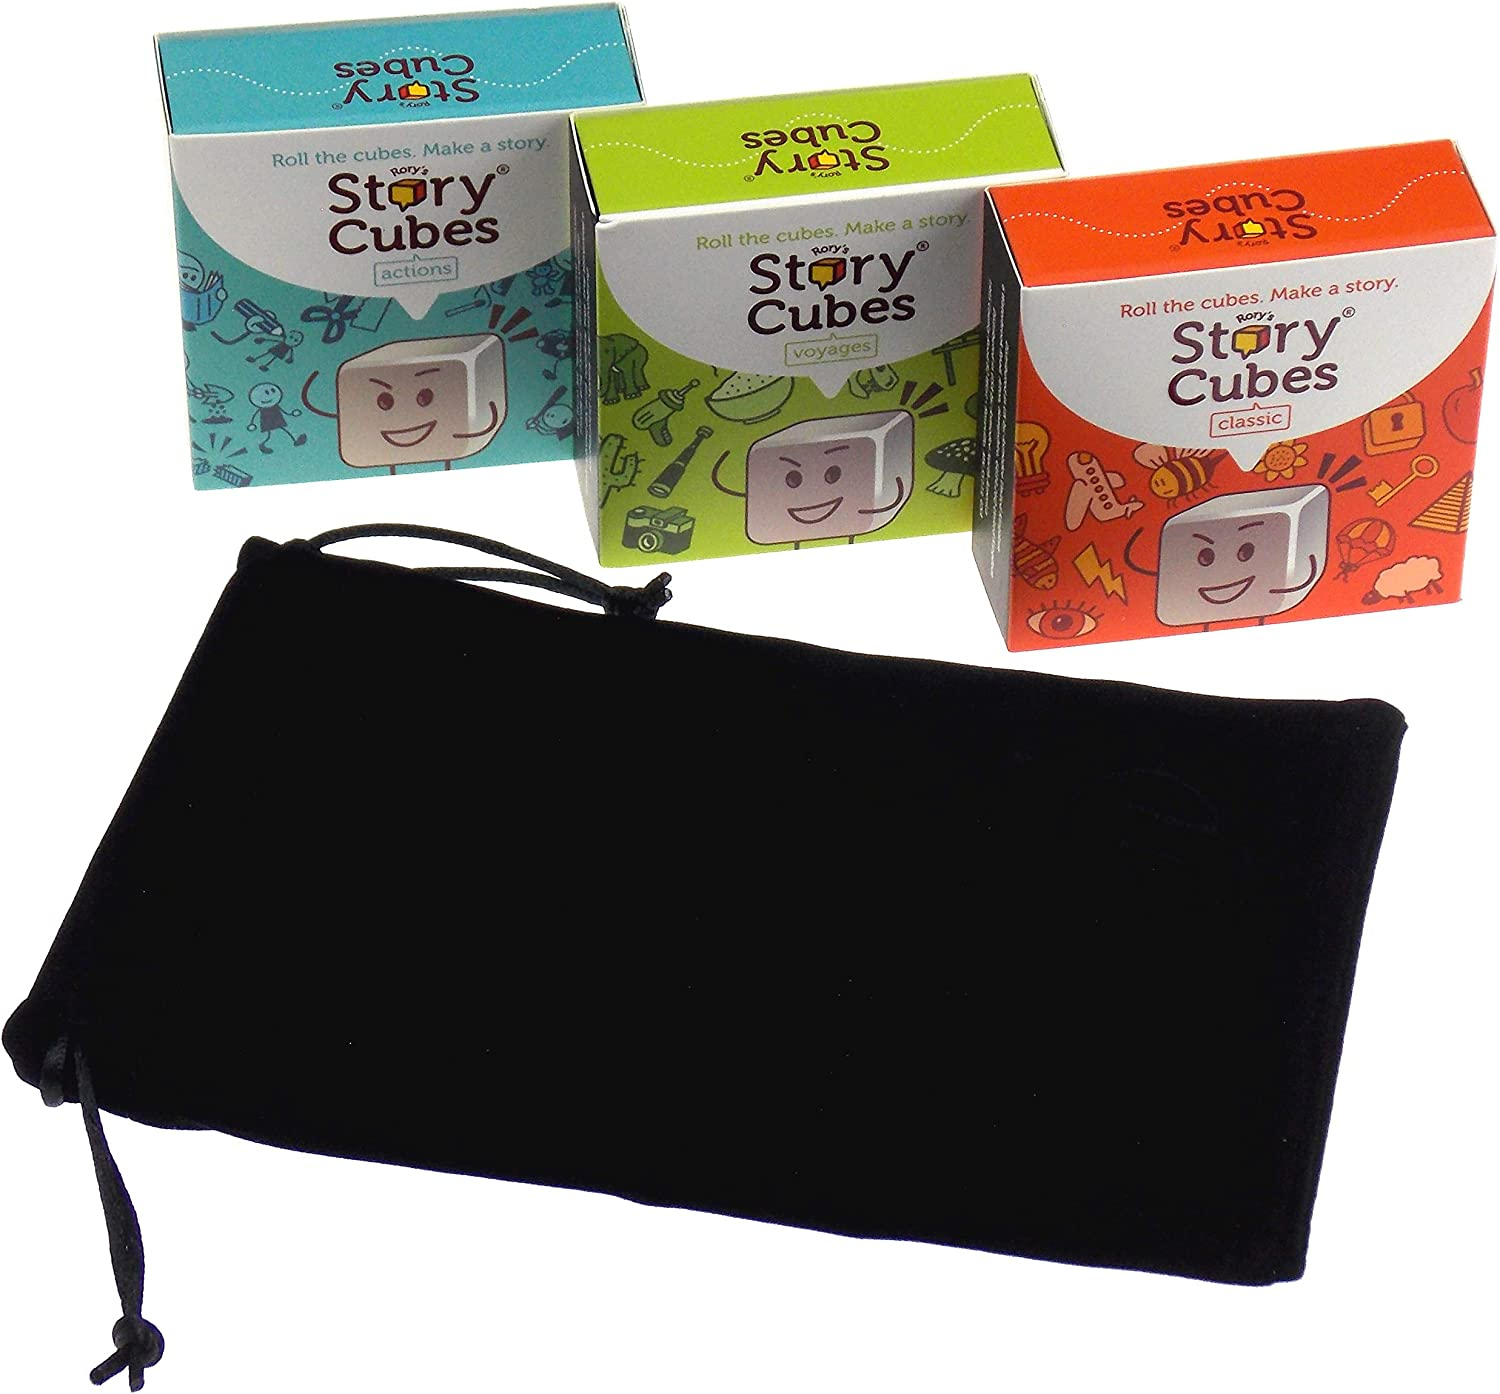 4 Items Actions Rorys Story Cubes Bundle Includes Rorys Story Cubes Classic Original Voyages /& Hickoryville Velour Drawstring Bag